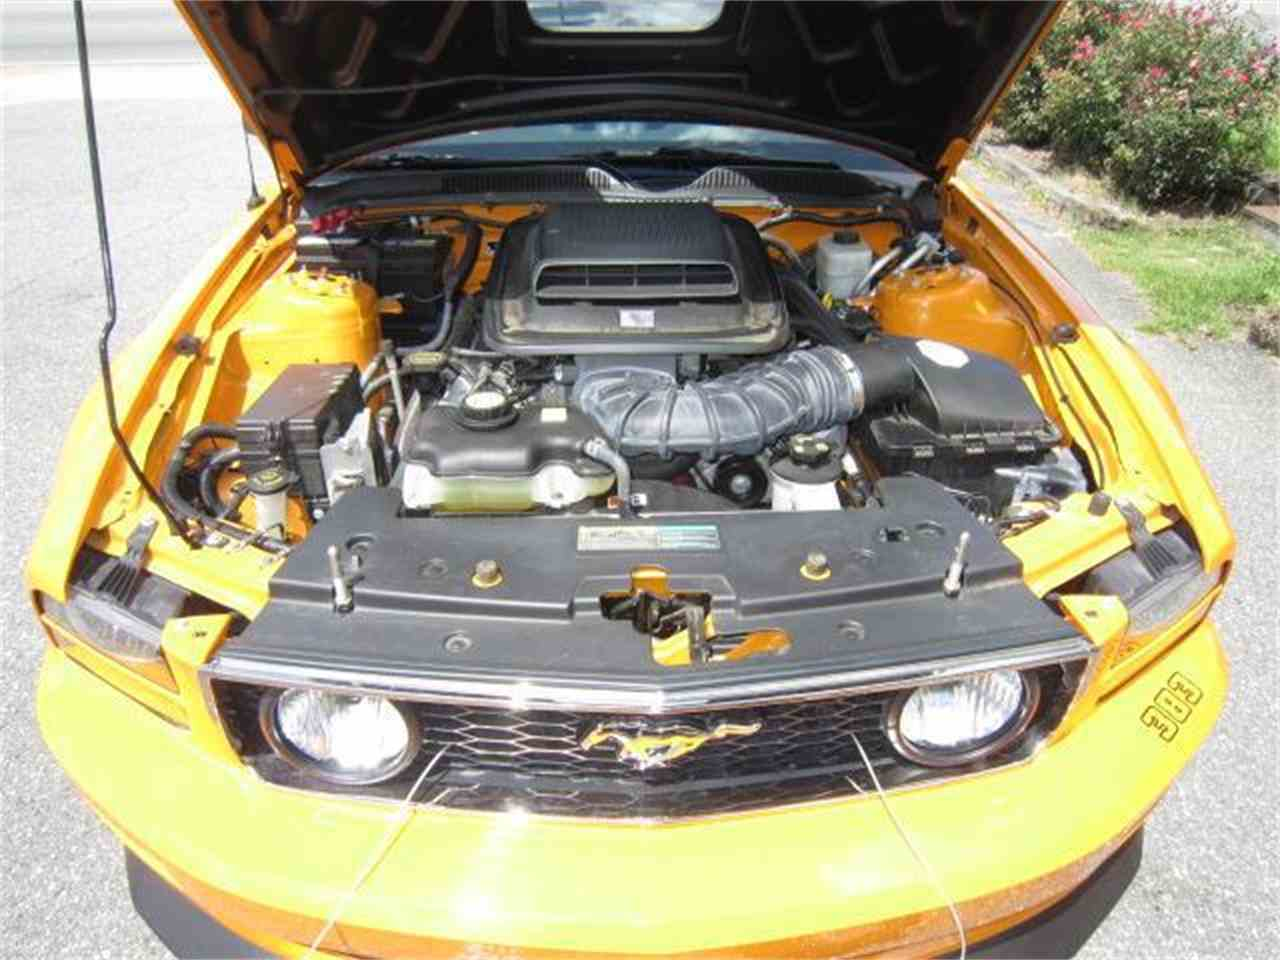 Large Picture of '07 Ford / Salene Mustang Parnelli Jones located in Tifton Georgia Offered by Auto Quest Investment Cars - JFG5